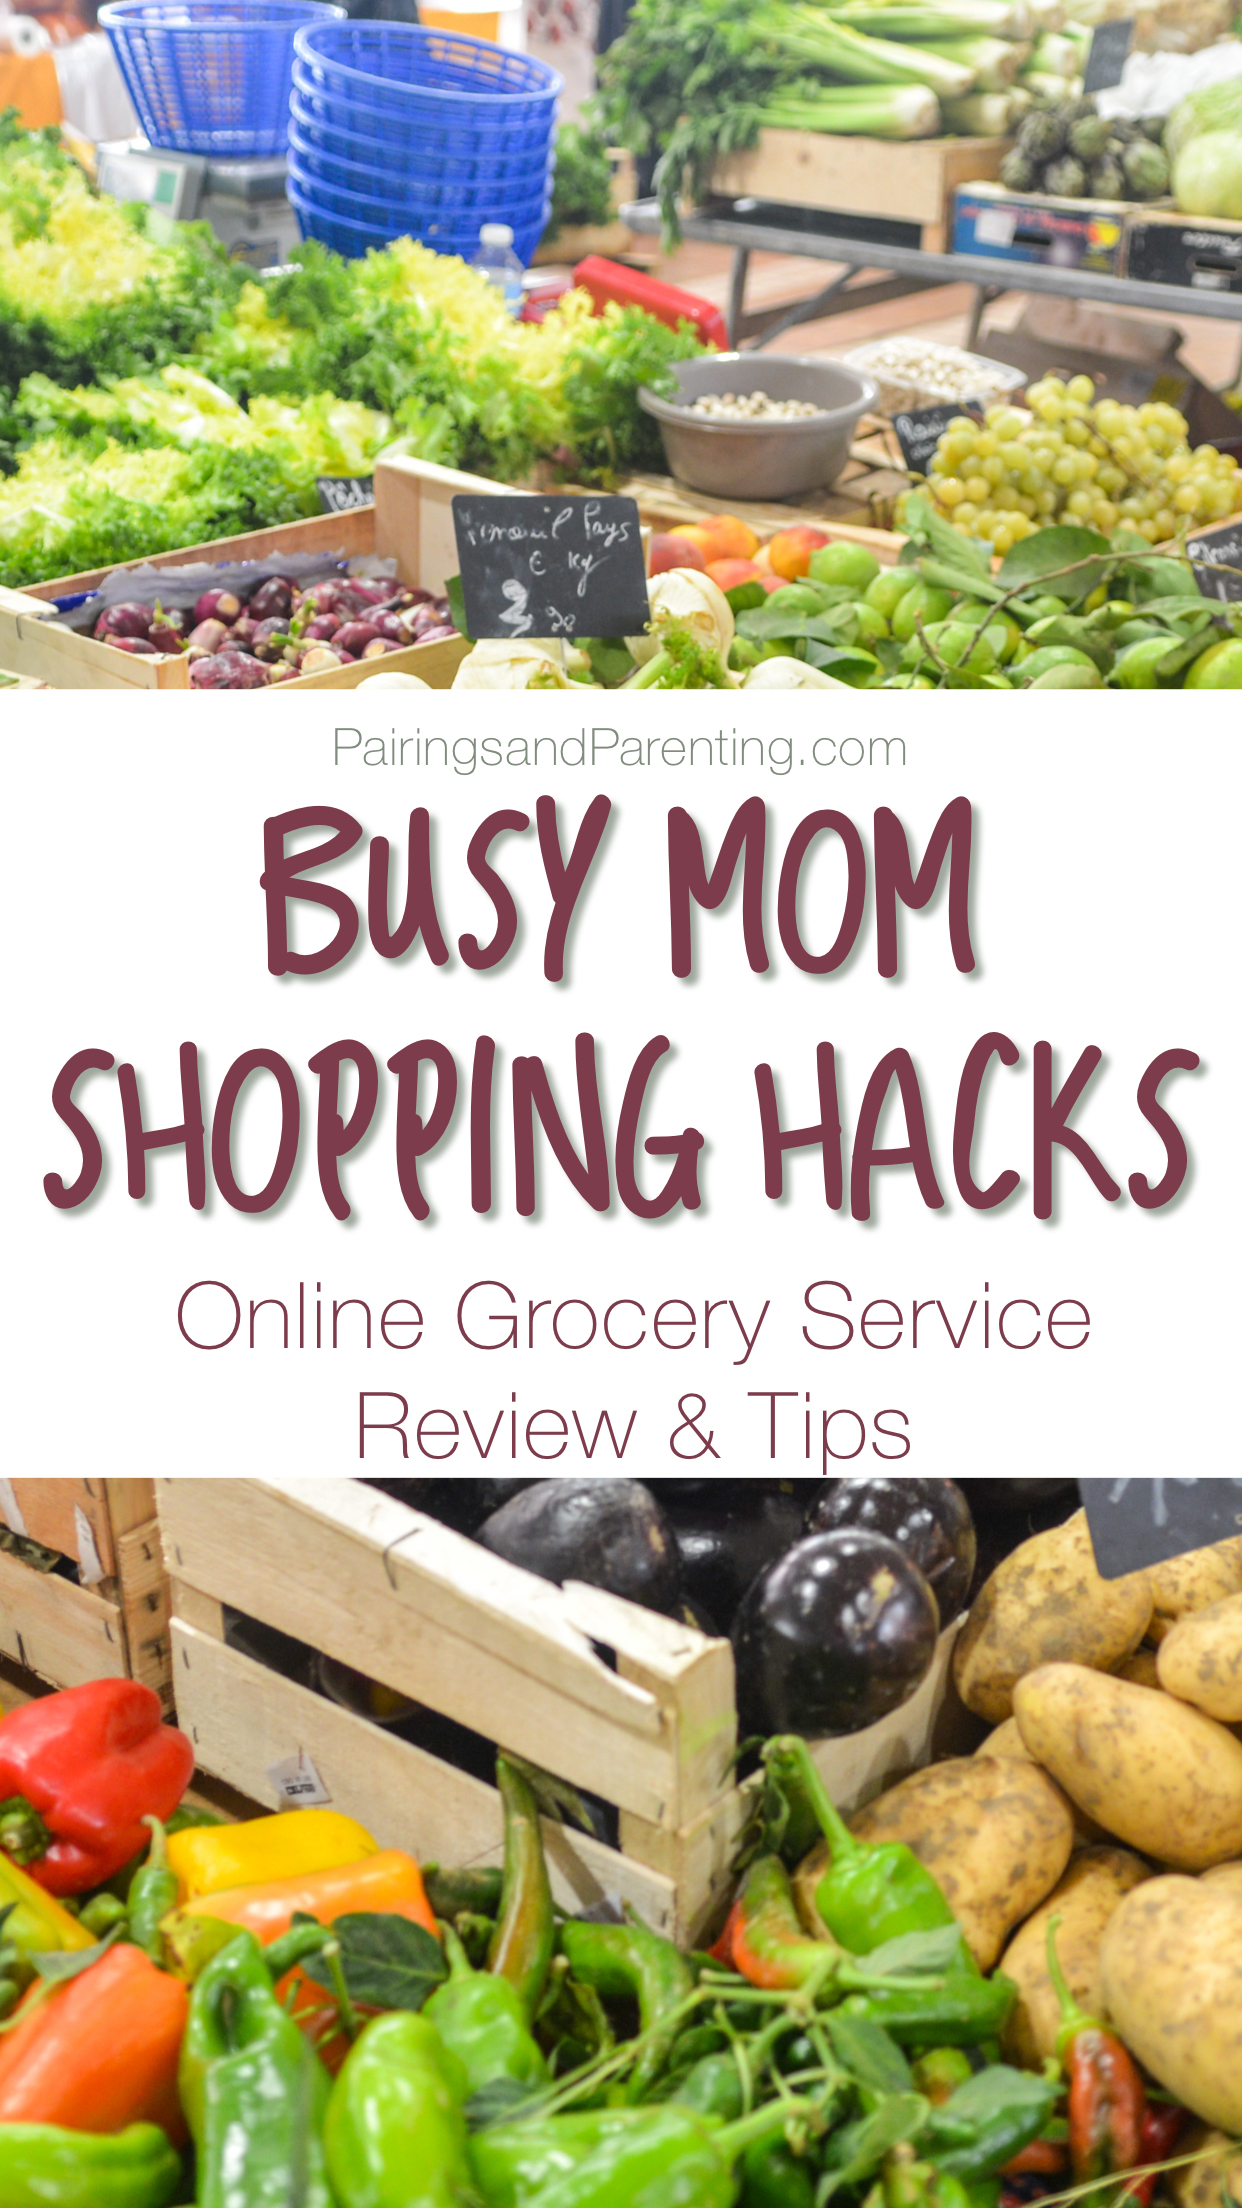 Online Grocery Service Review Tips! Great for busy moms! Busy mom Shopping hack!